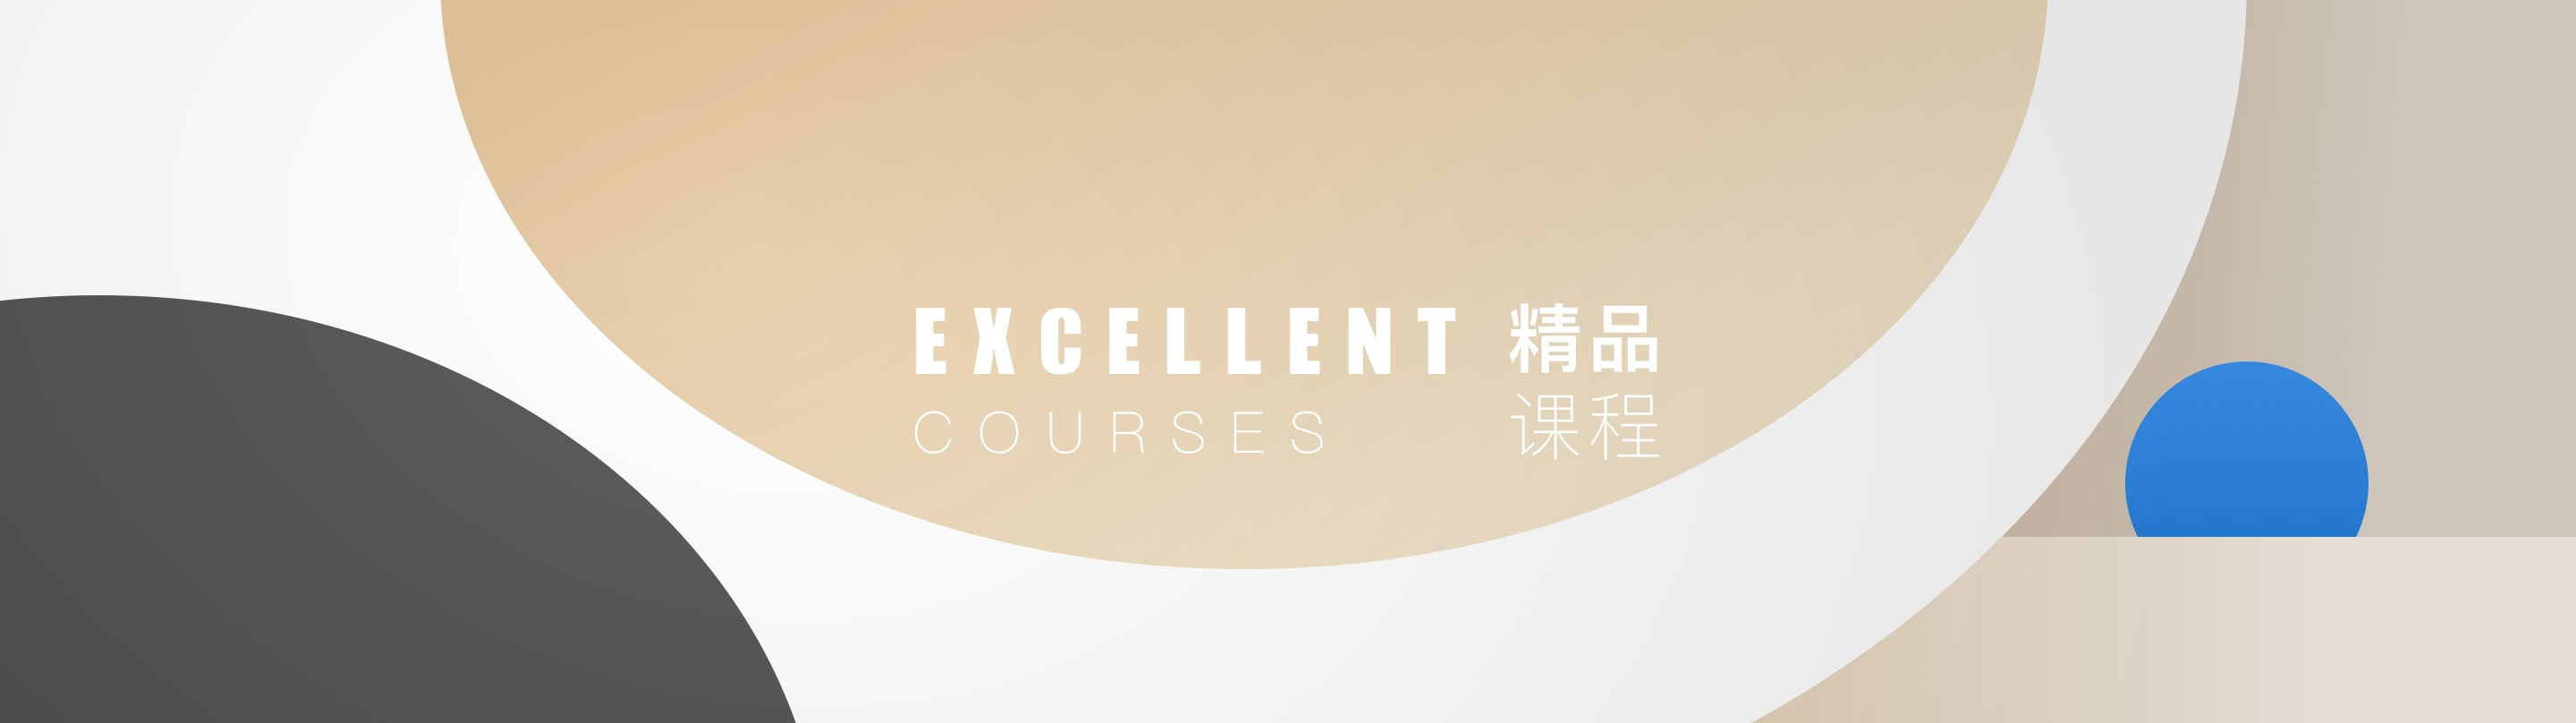 Banner course 0330